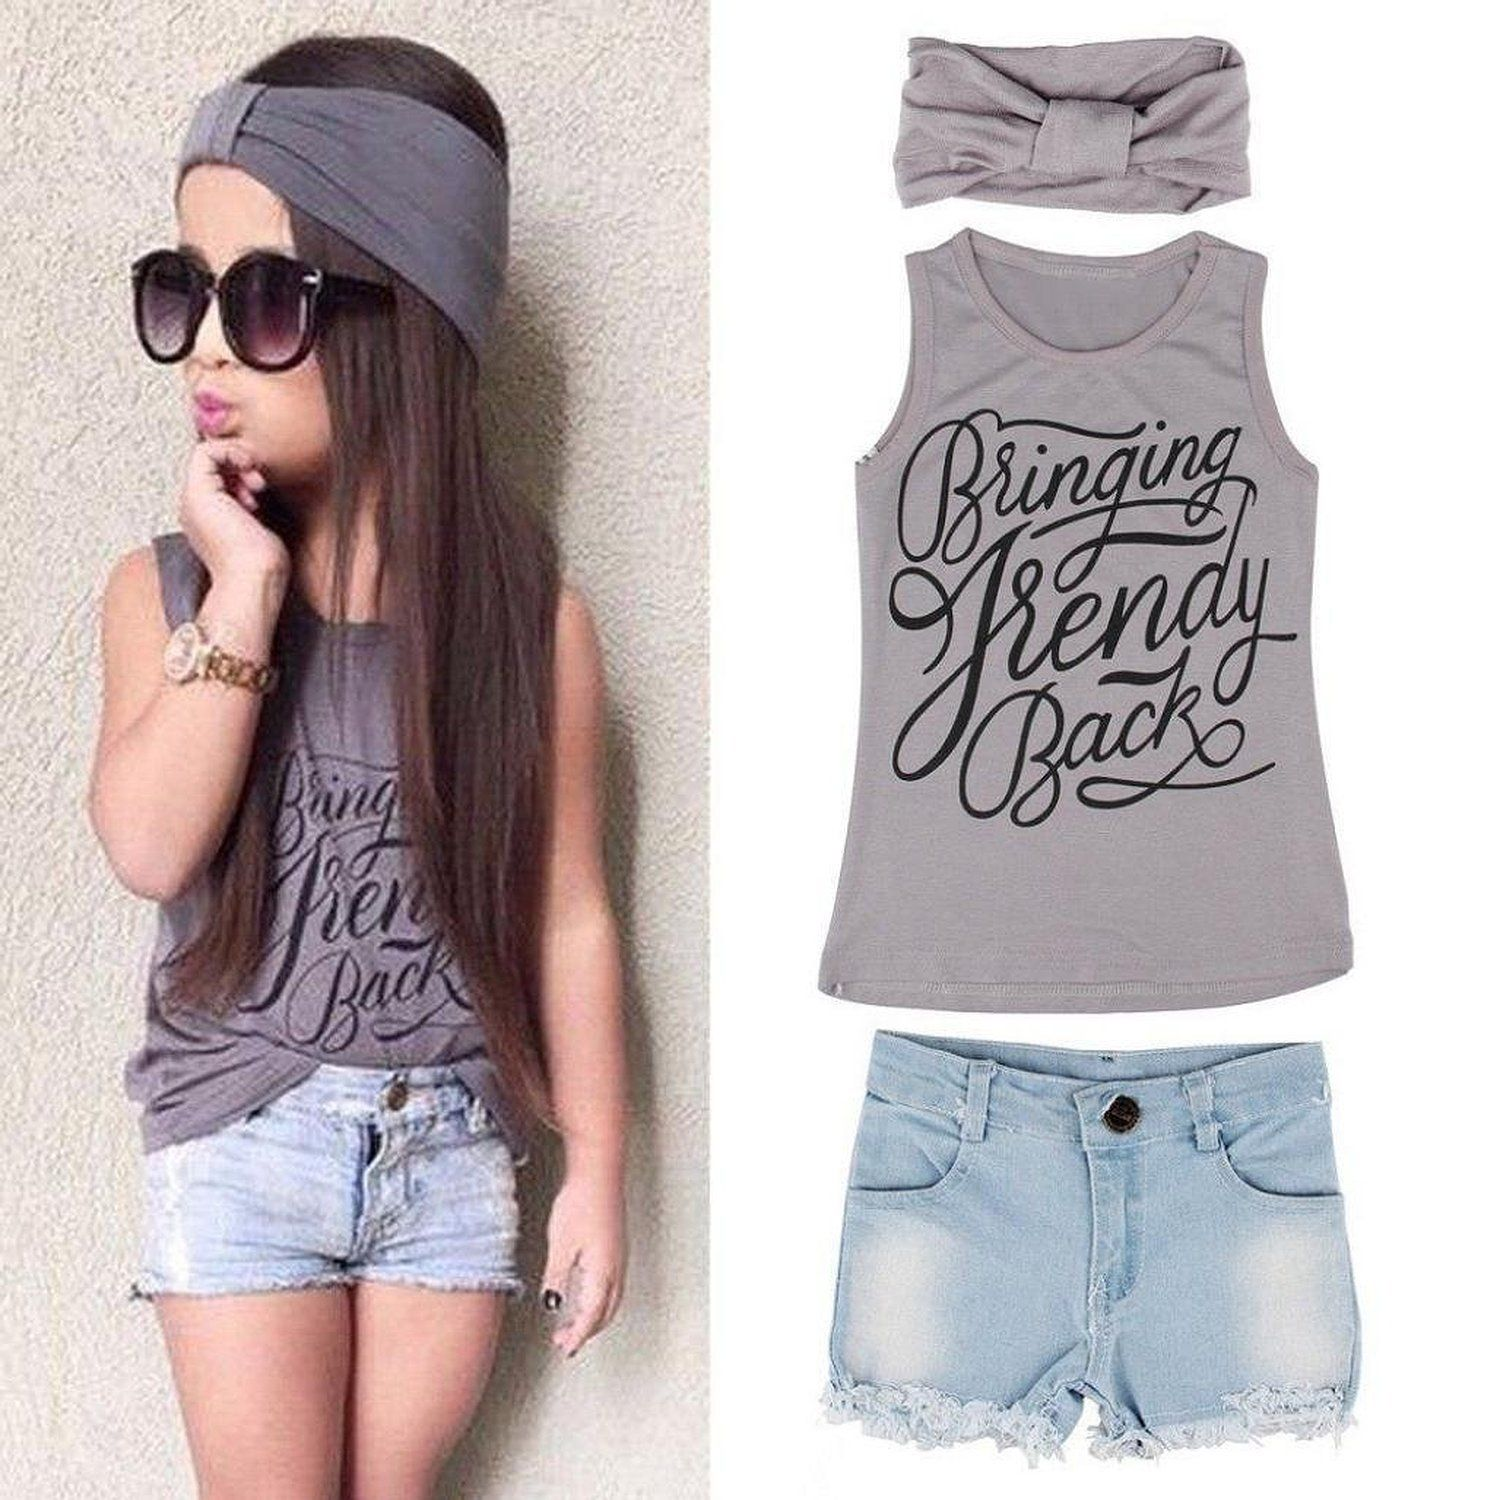 bbbfc3183b Kids Girls Summer Cute Letters Print Vest Tops Denim Shorts Pants with  Headband. Material